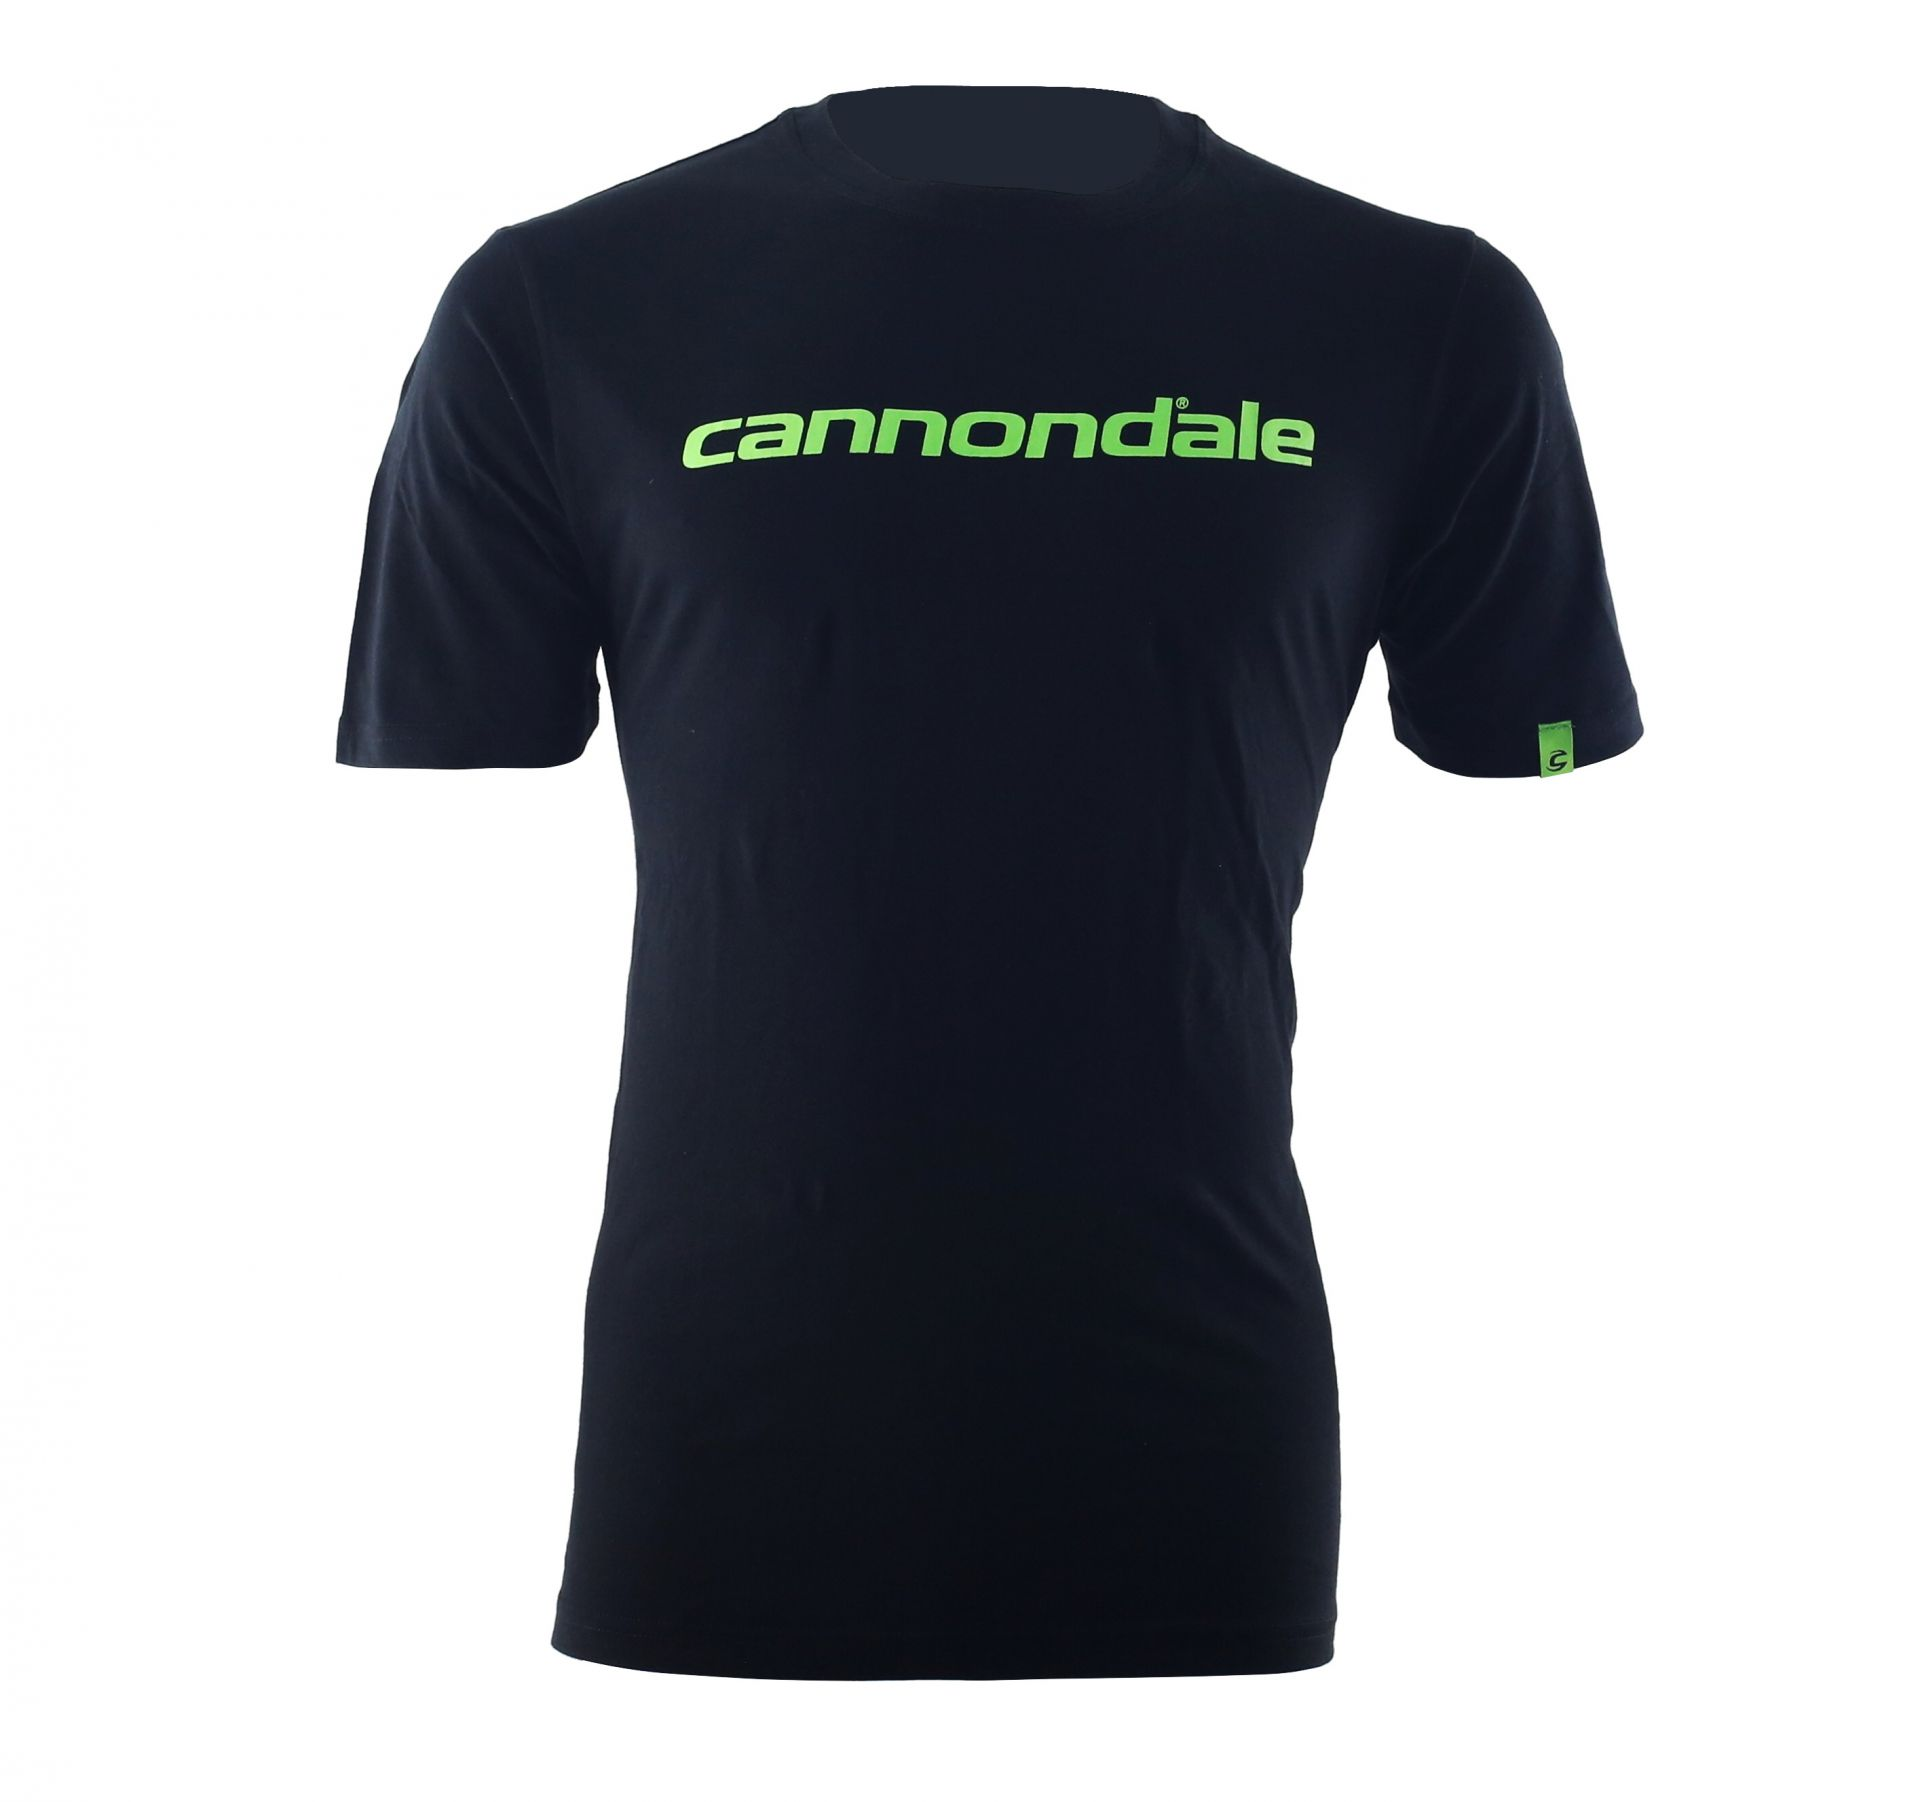 T-Shirt Cannondale Casual Noir - XL